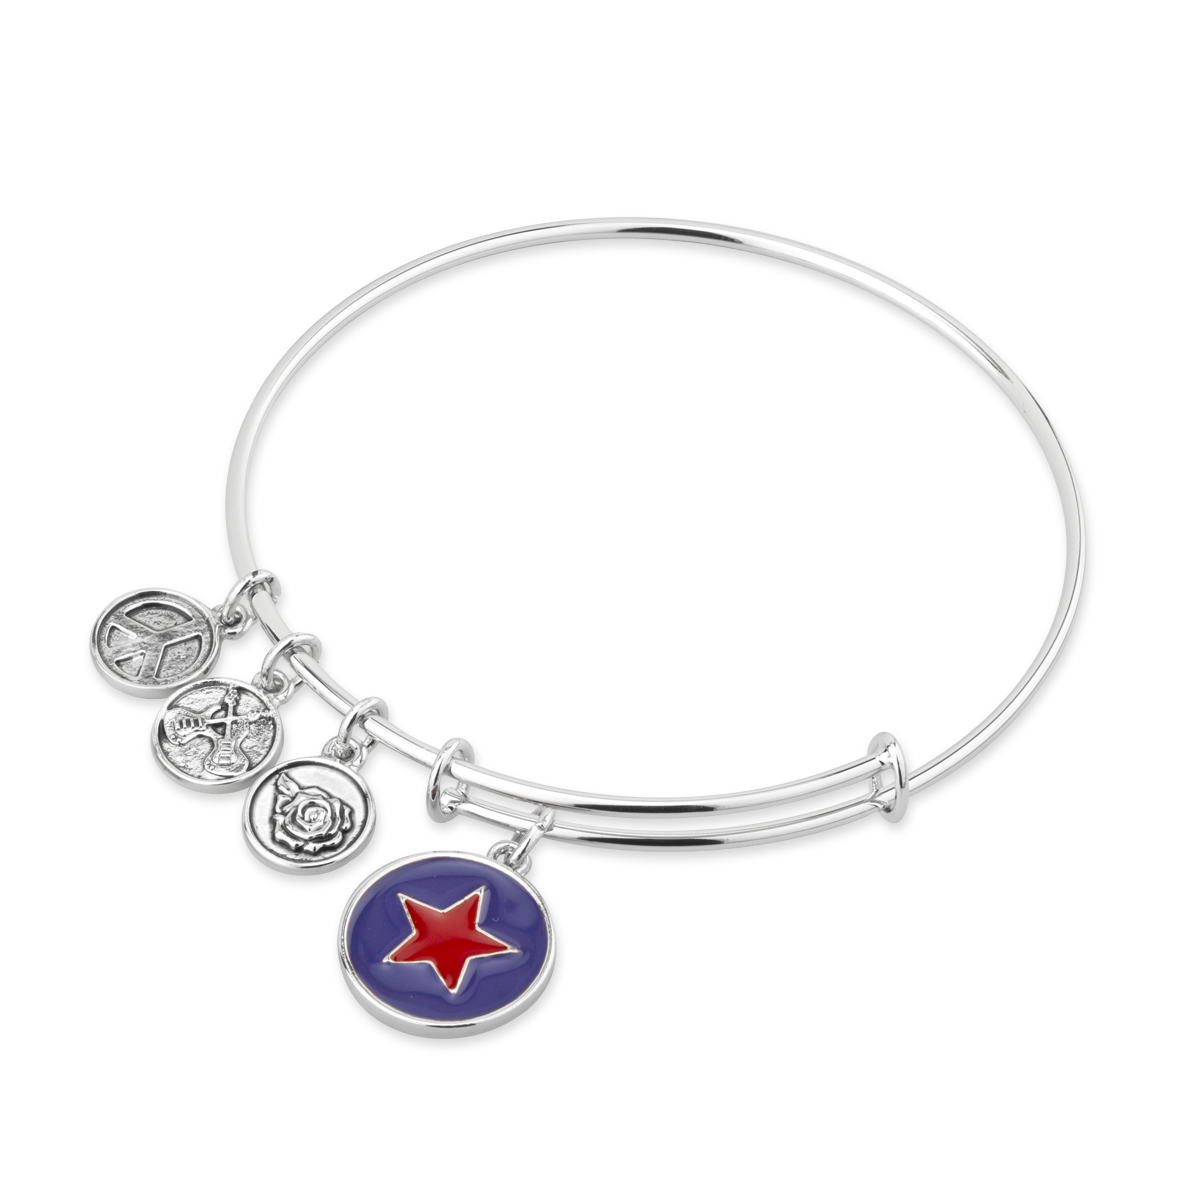 Silver Bangle Bracelet With Red Enamel Star Charm